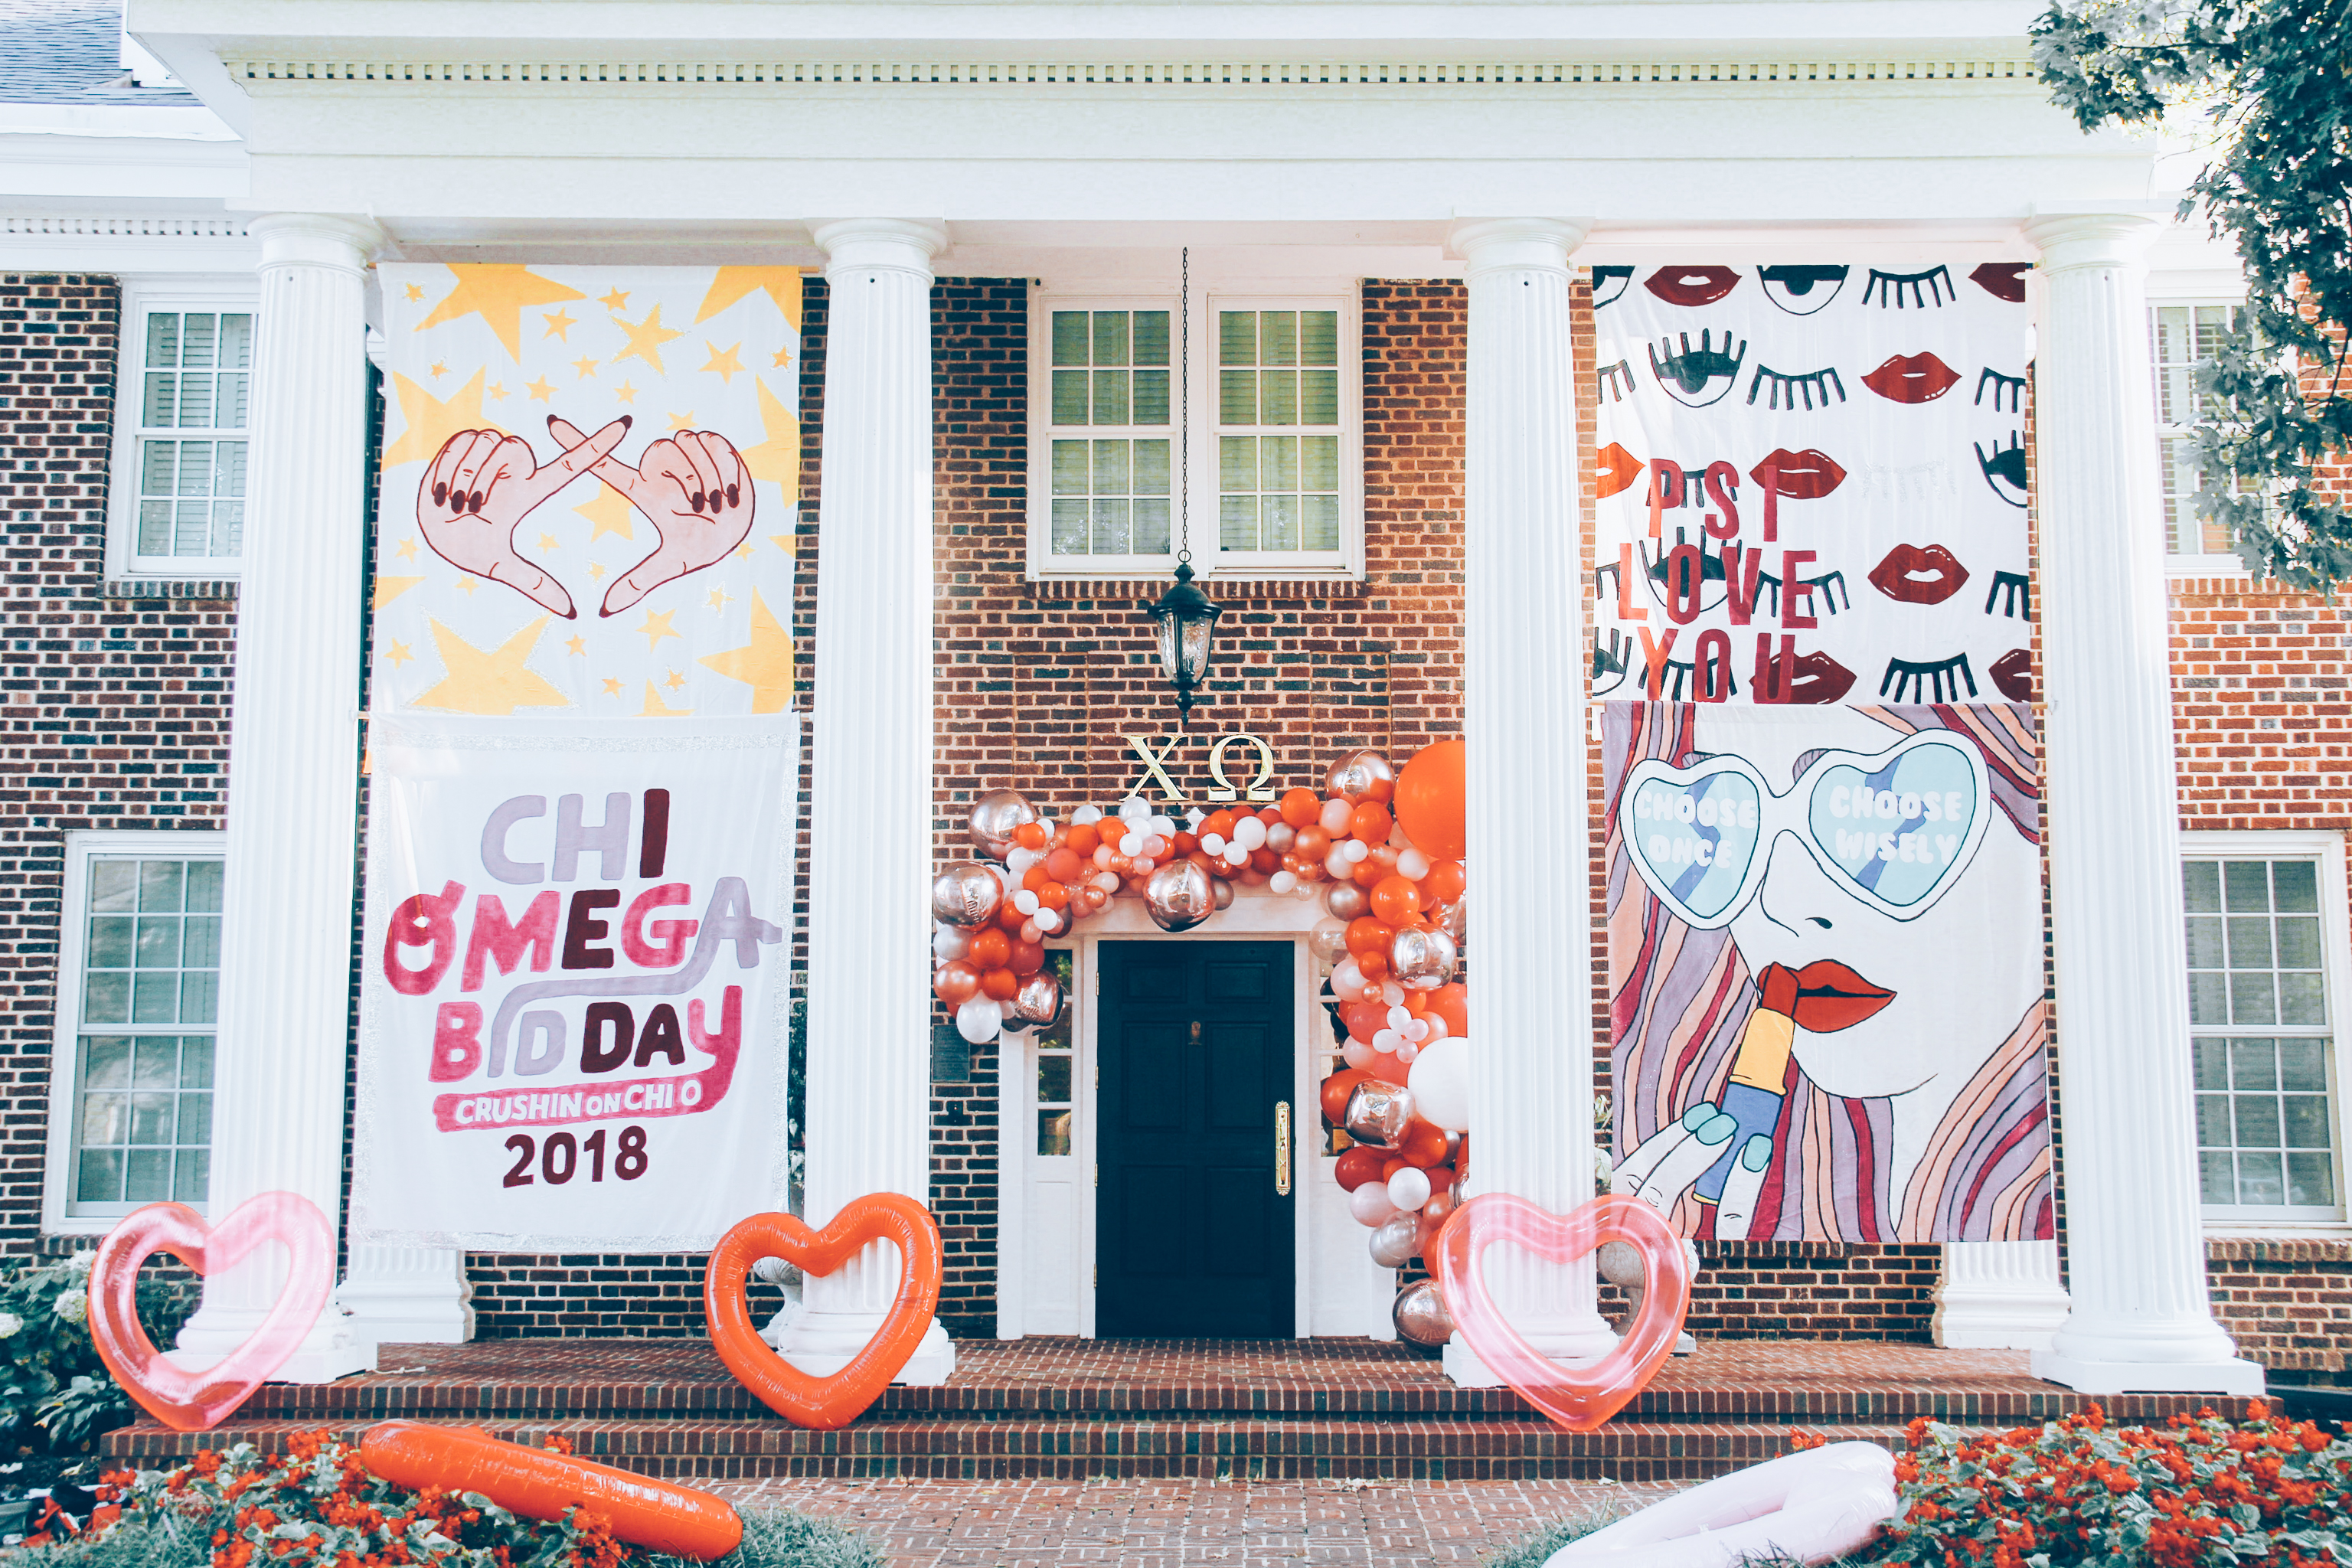 Chi Omega | Psi Chapter at University of Arkansas